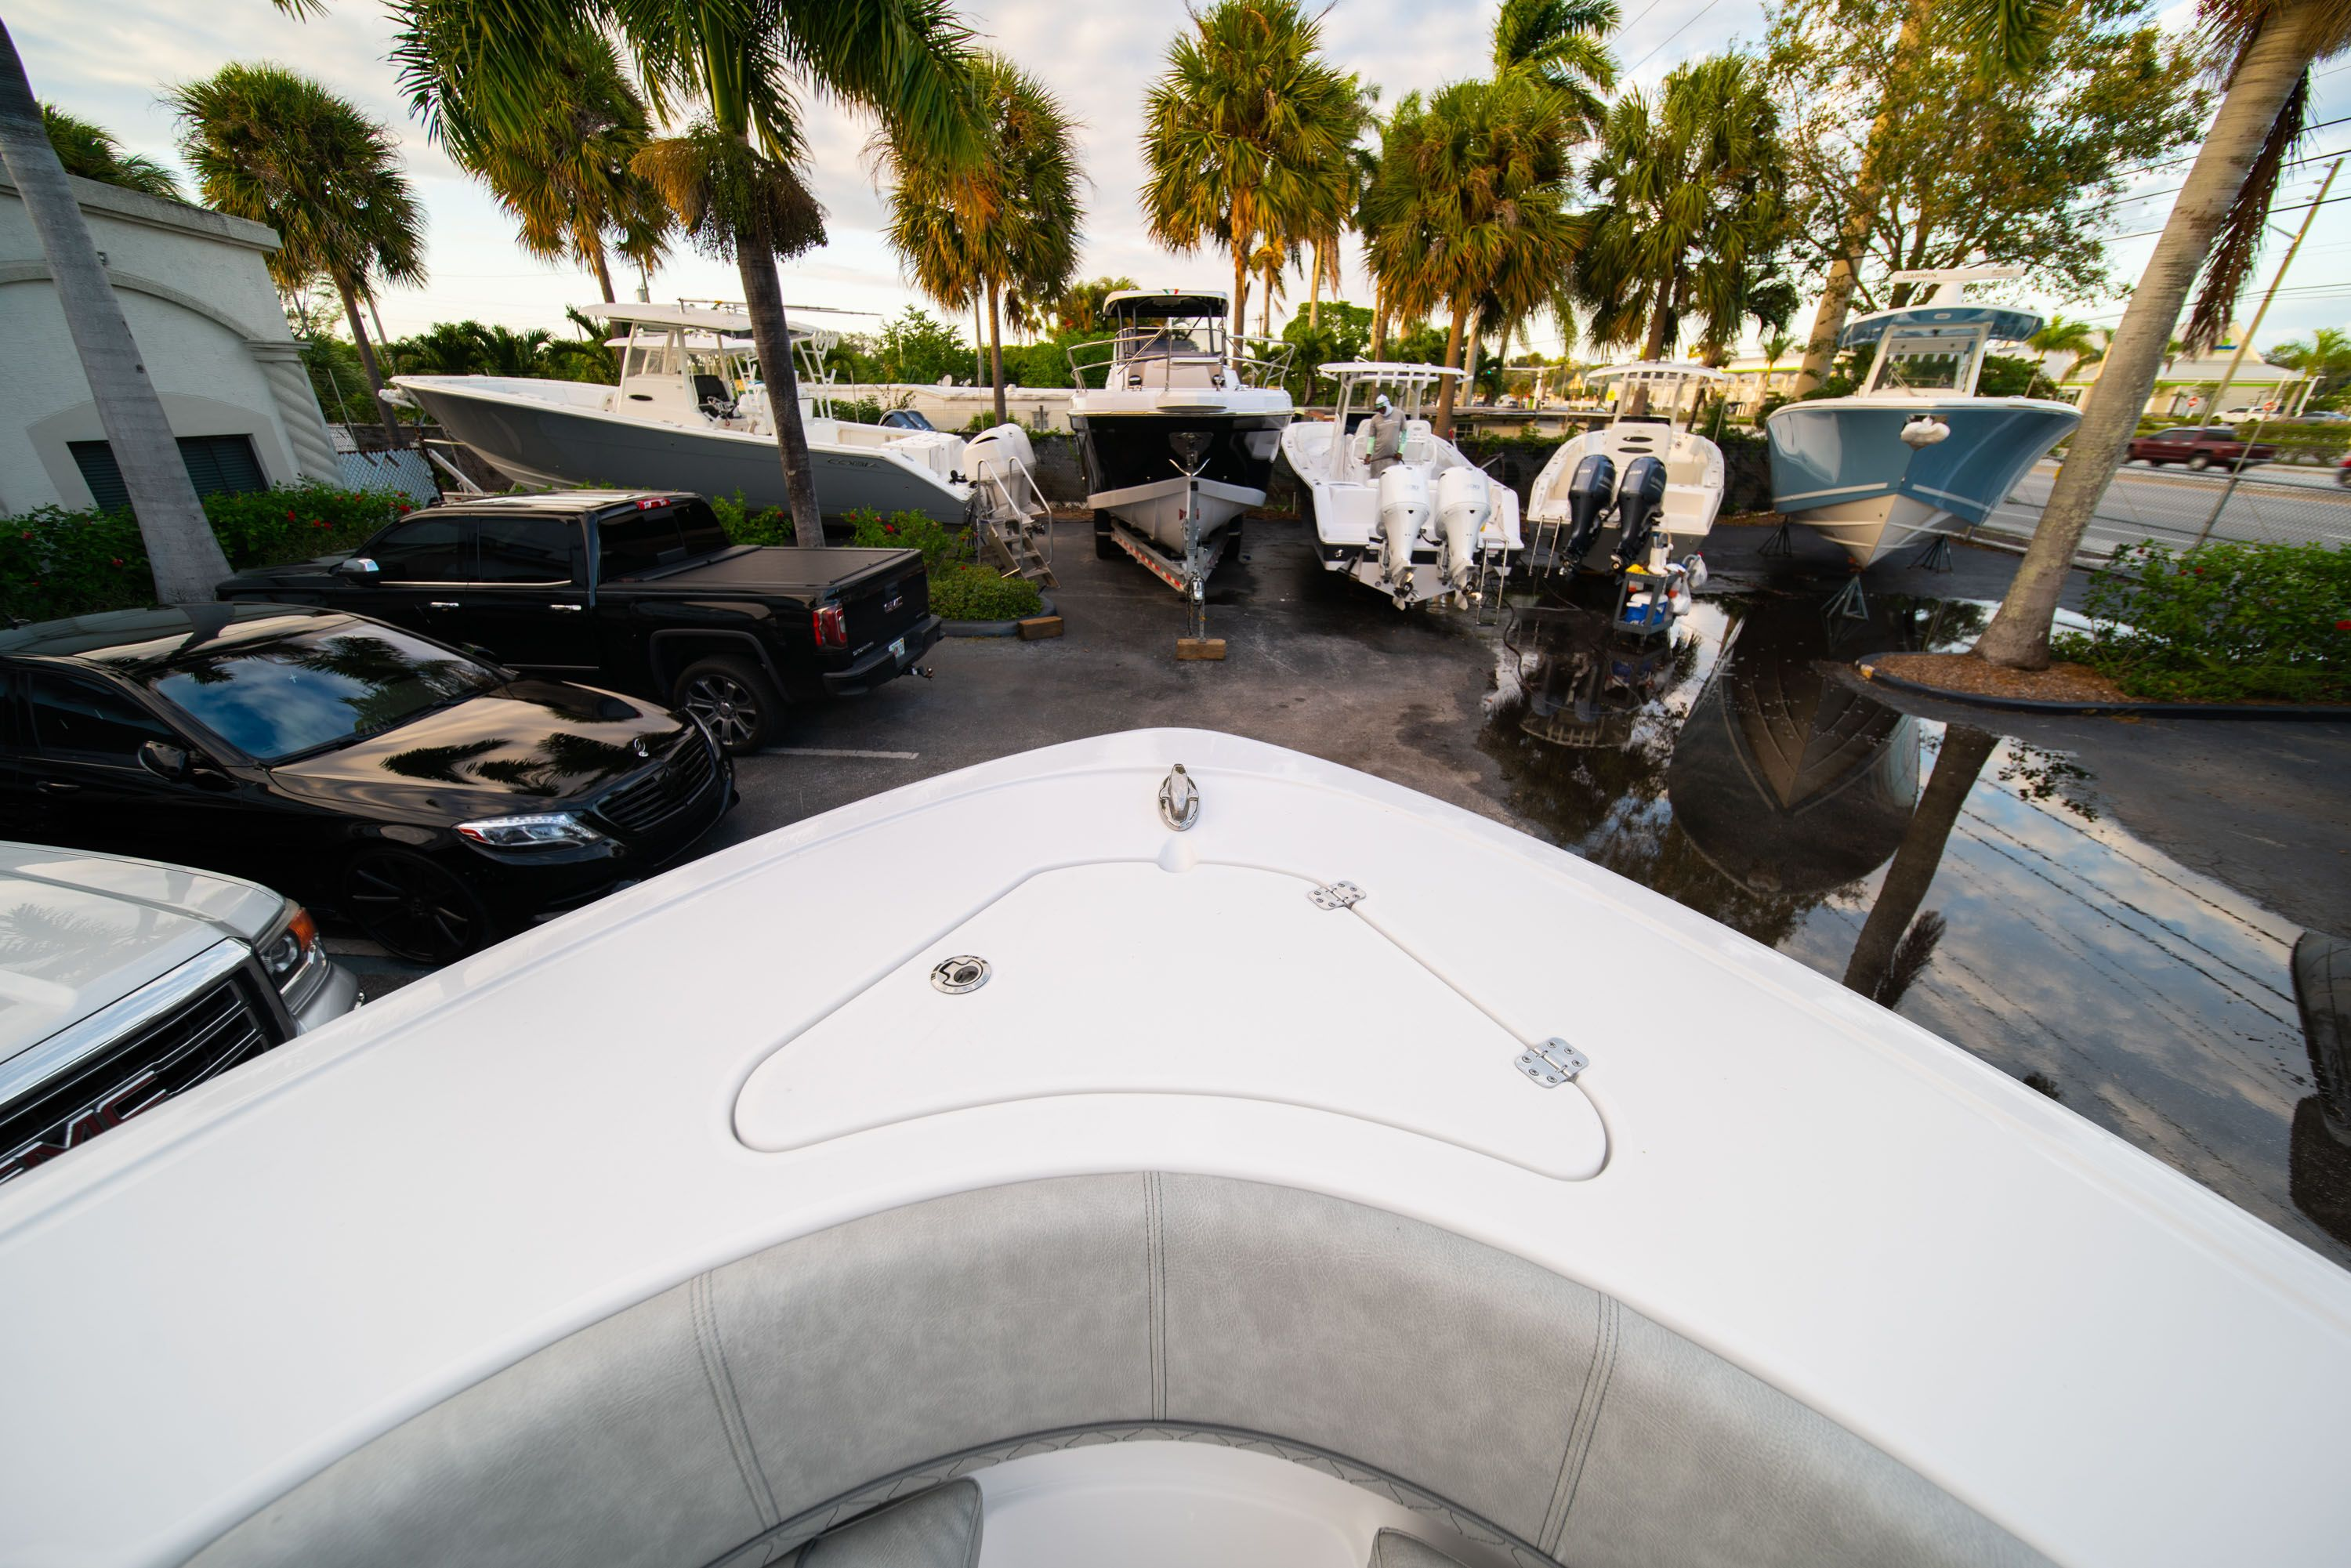 Thumbnail 41 for New 2020 Sportsman Open 232 Center Console boat for sale in West Palm Beach, FL